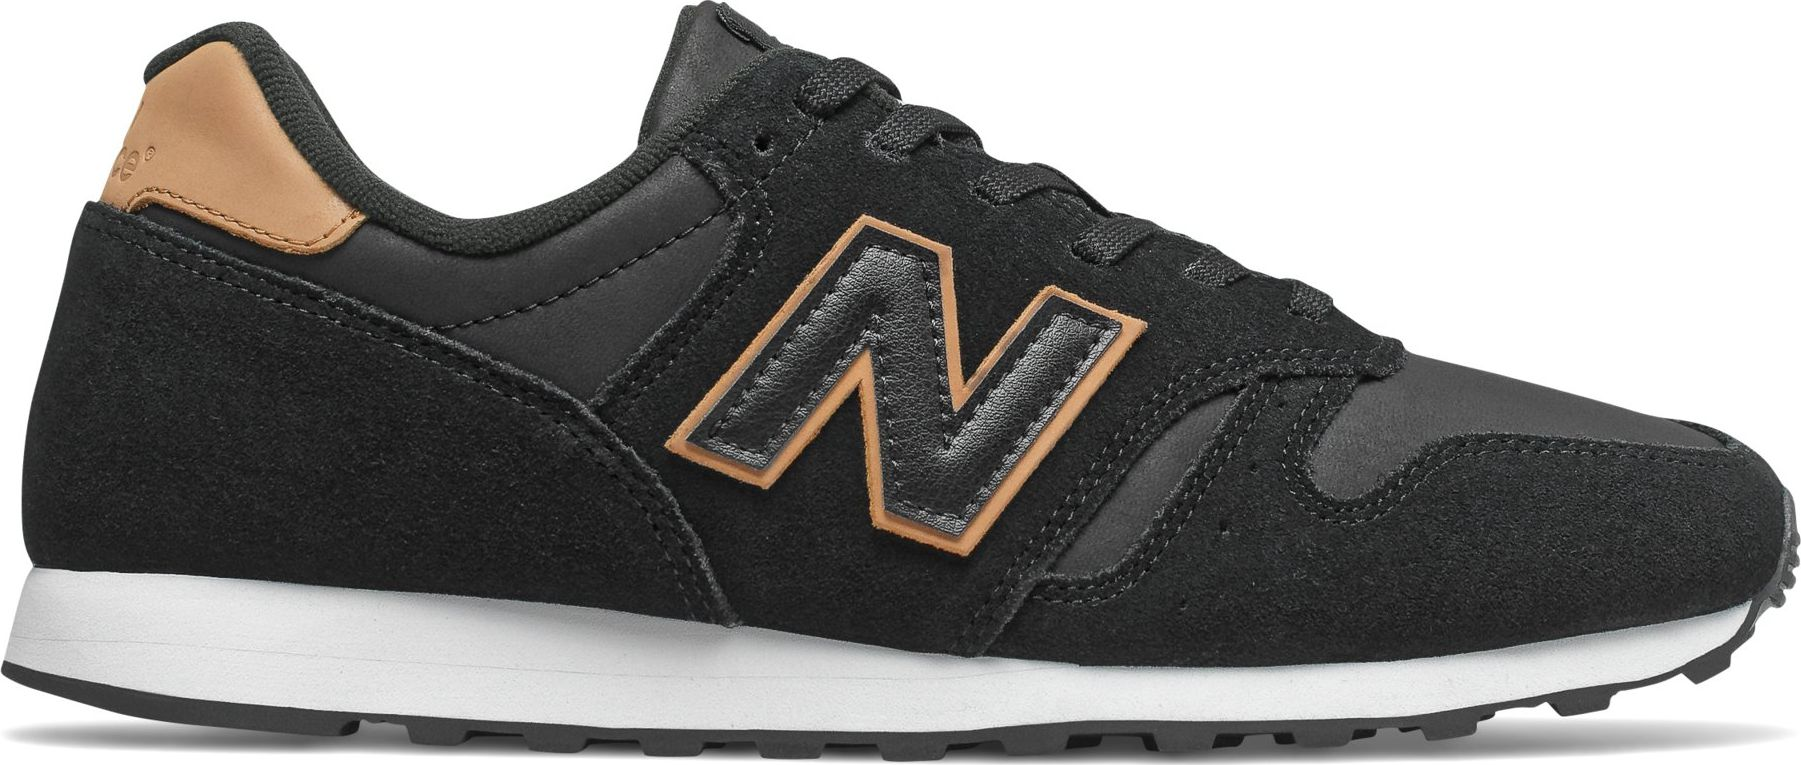 New Balance ML373 Black MMT 43